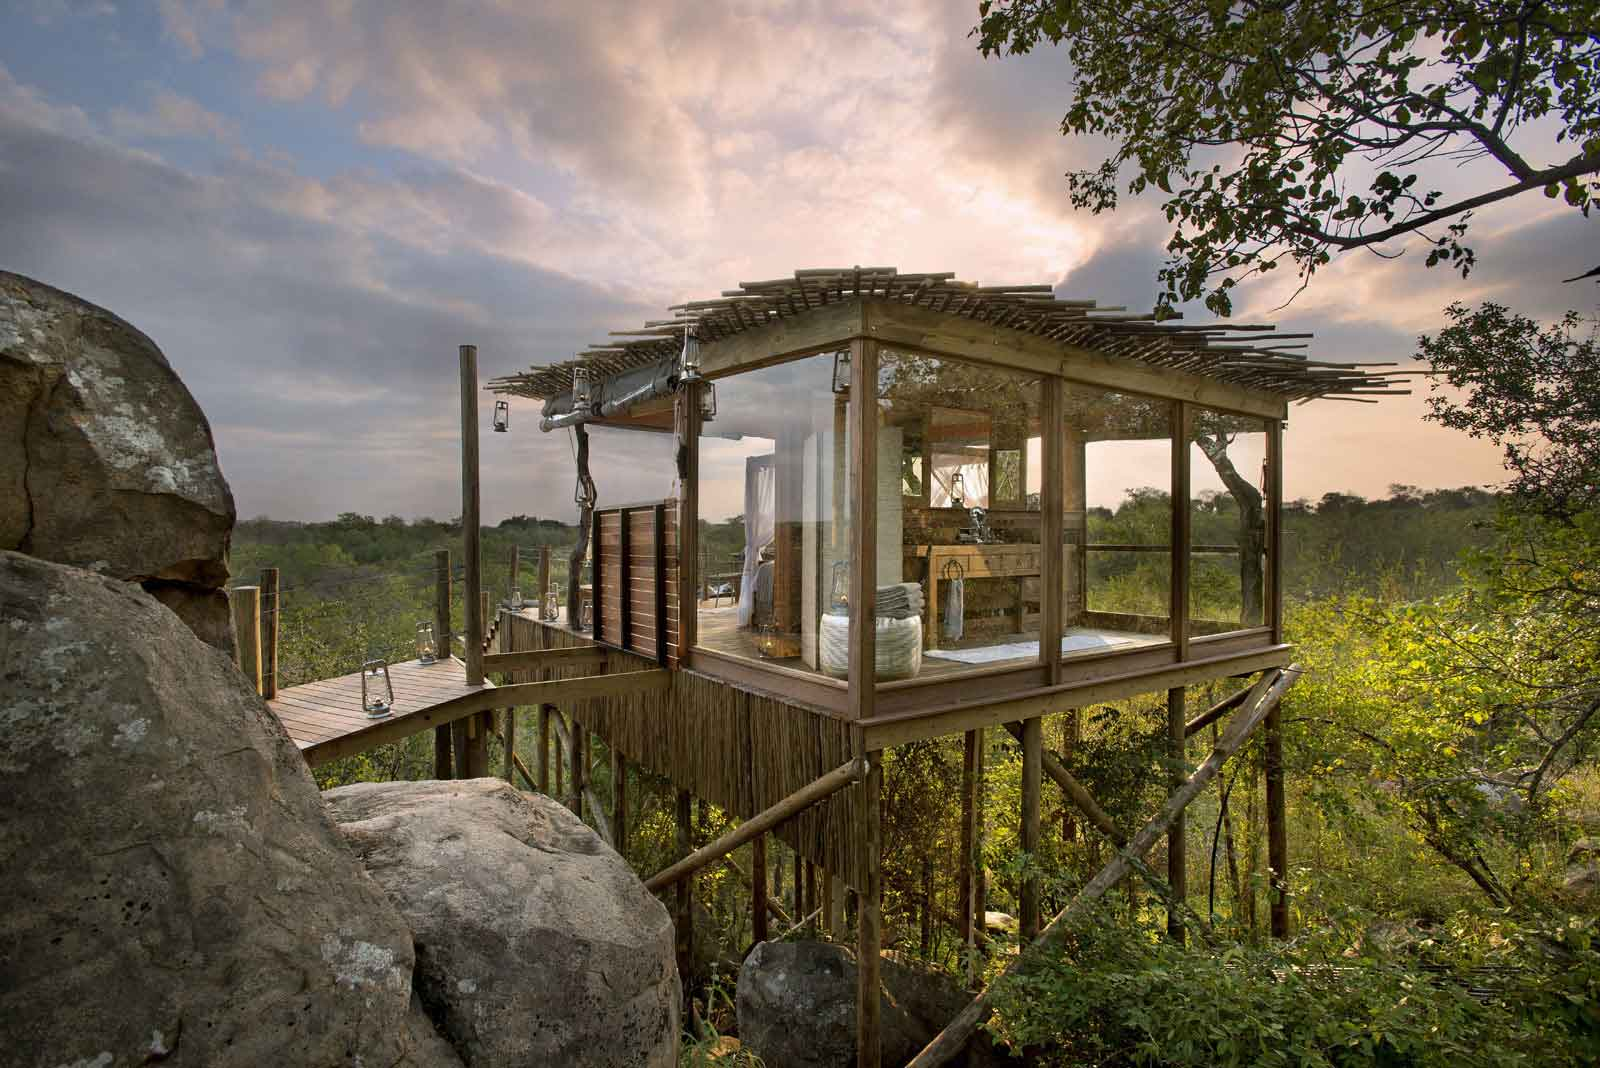 The Kingston Treehouse Sun Safaris